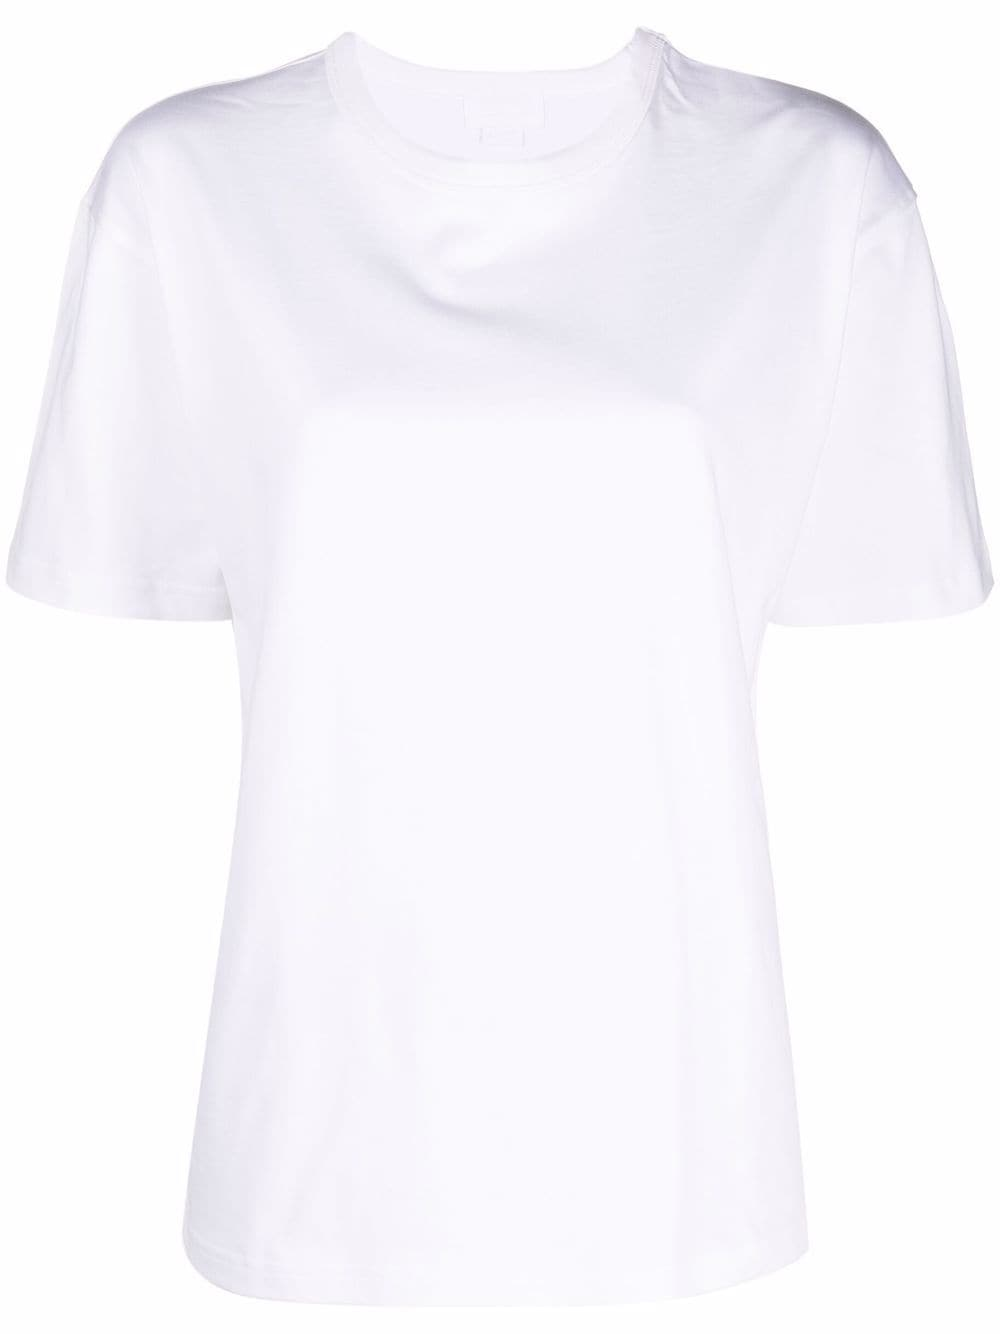 <p class='small-title'>A.P.C.</p>A.P.C. X Suzanne Koller Alma Embroidered T-Shirt